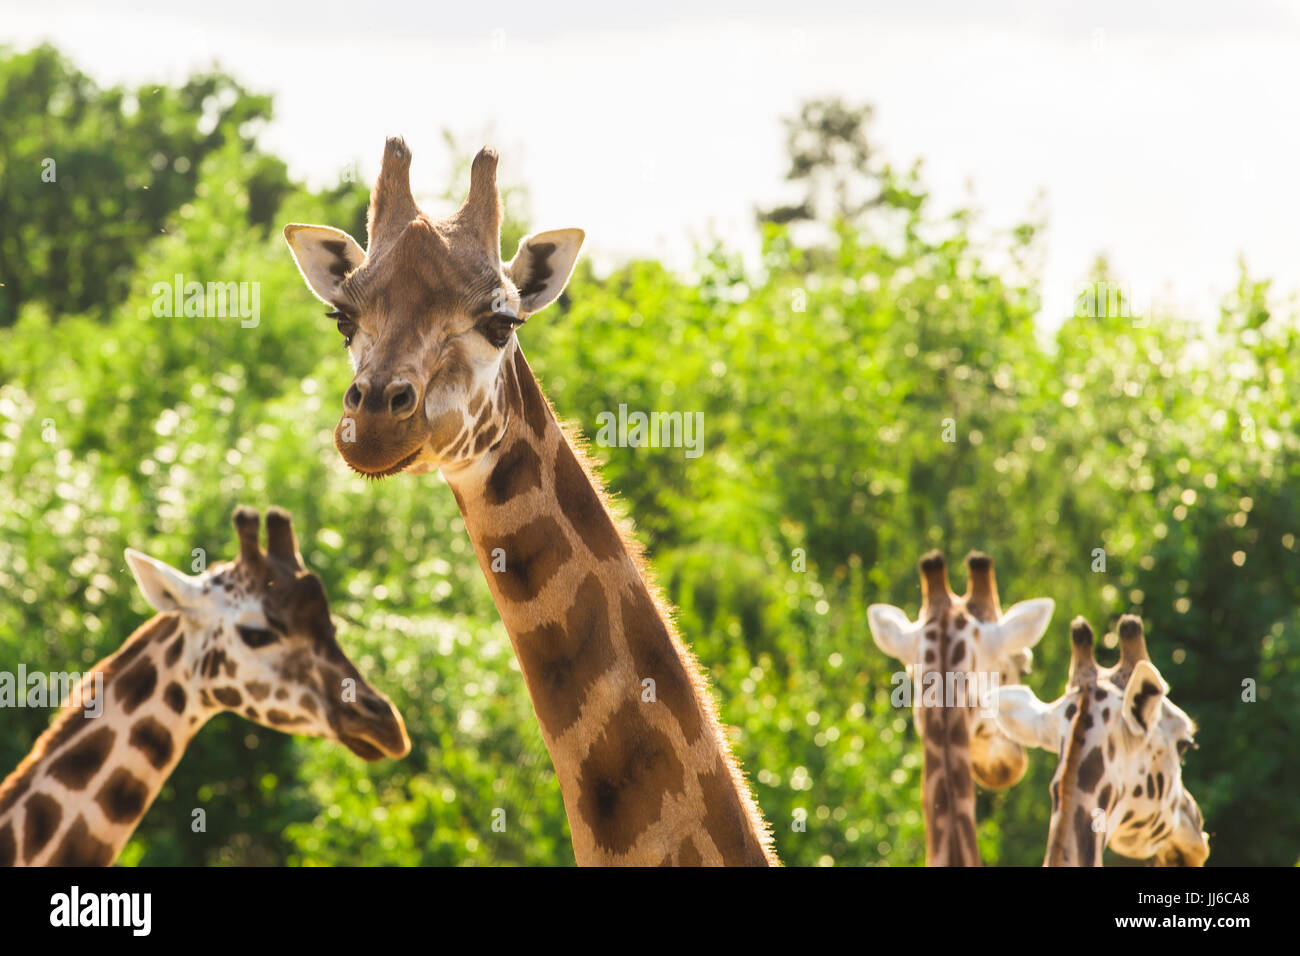 Close-up of a giraffe in front of some green trees. - Stock Image